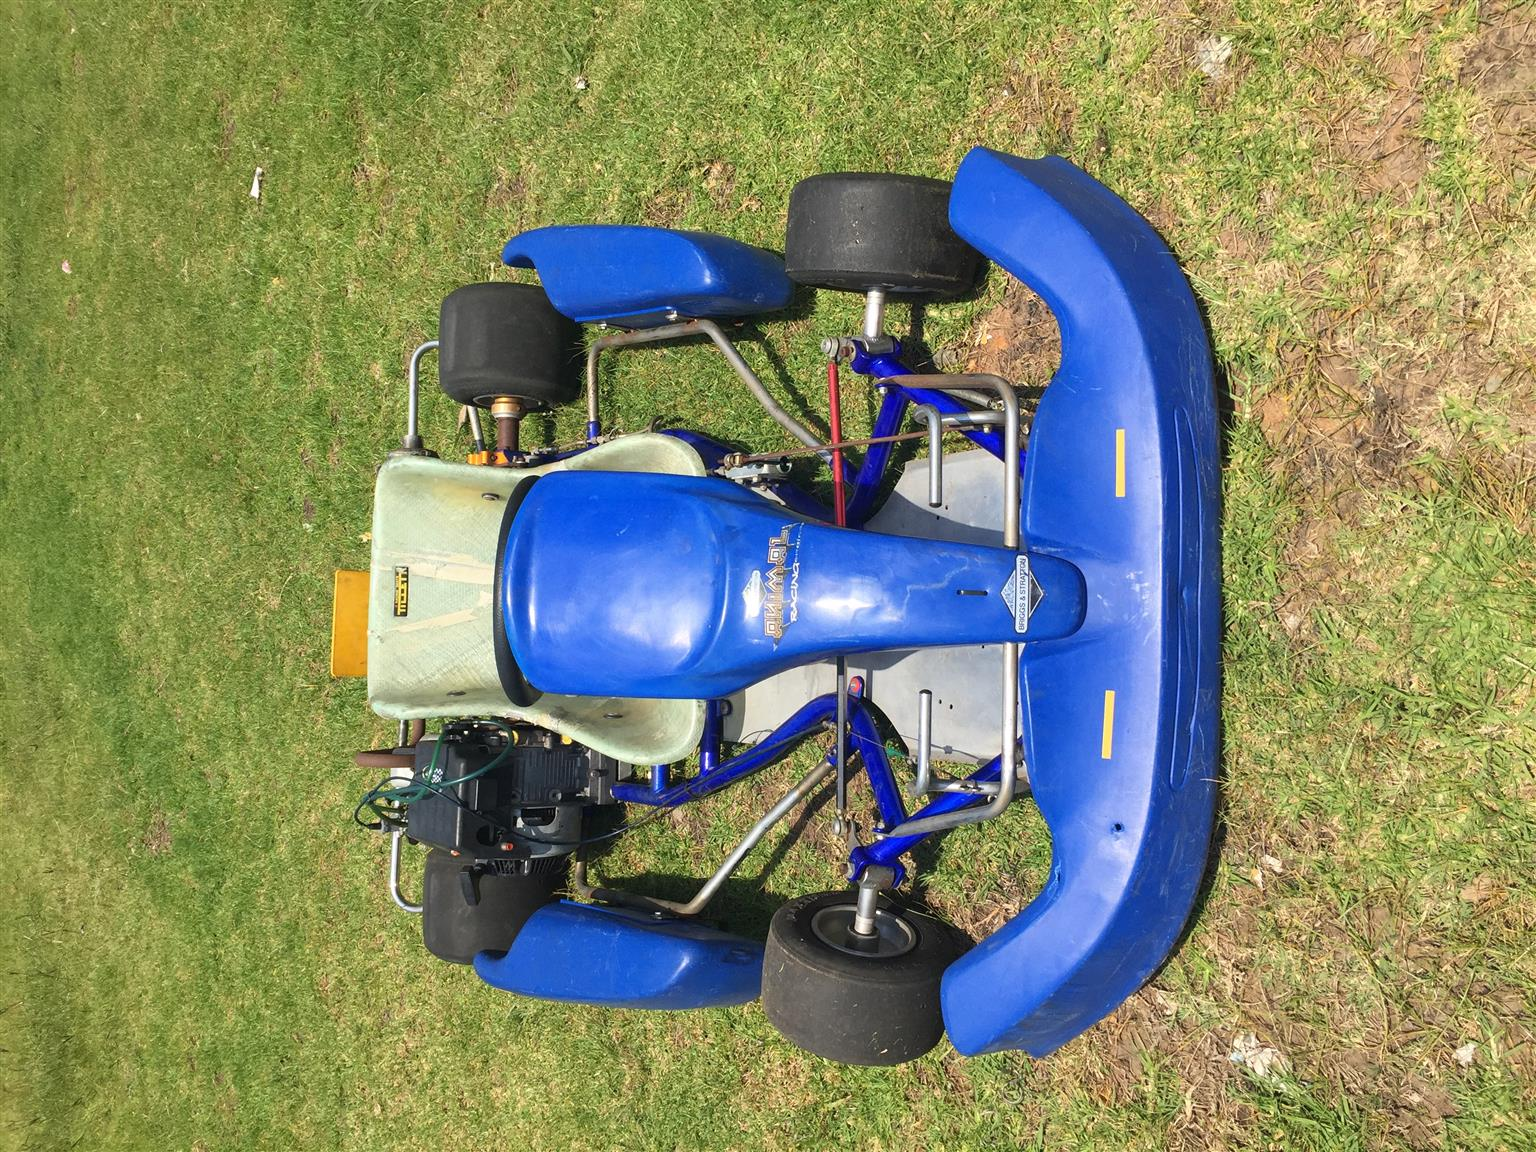 Briggs and Straton Racing Go kart,CRG Frame | Junk Mail